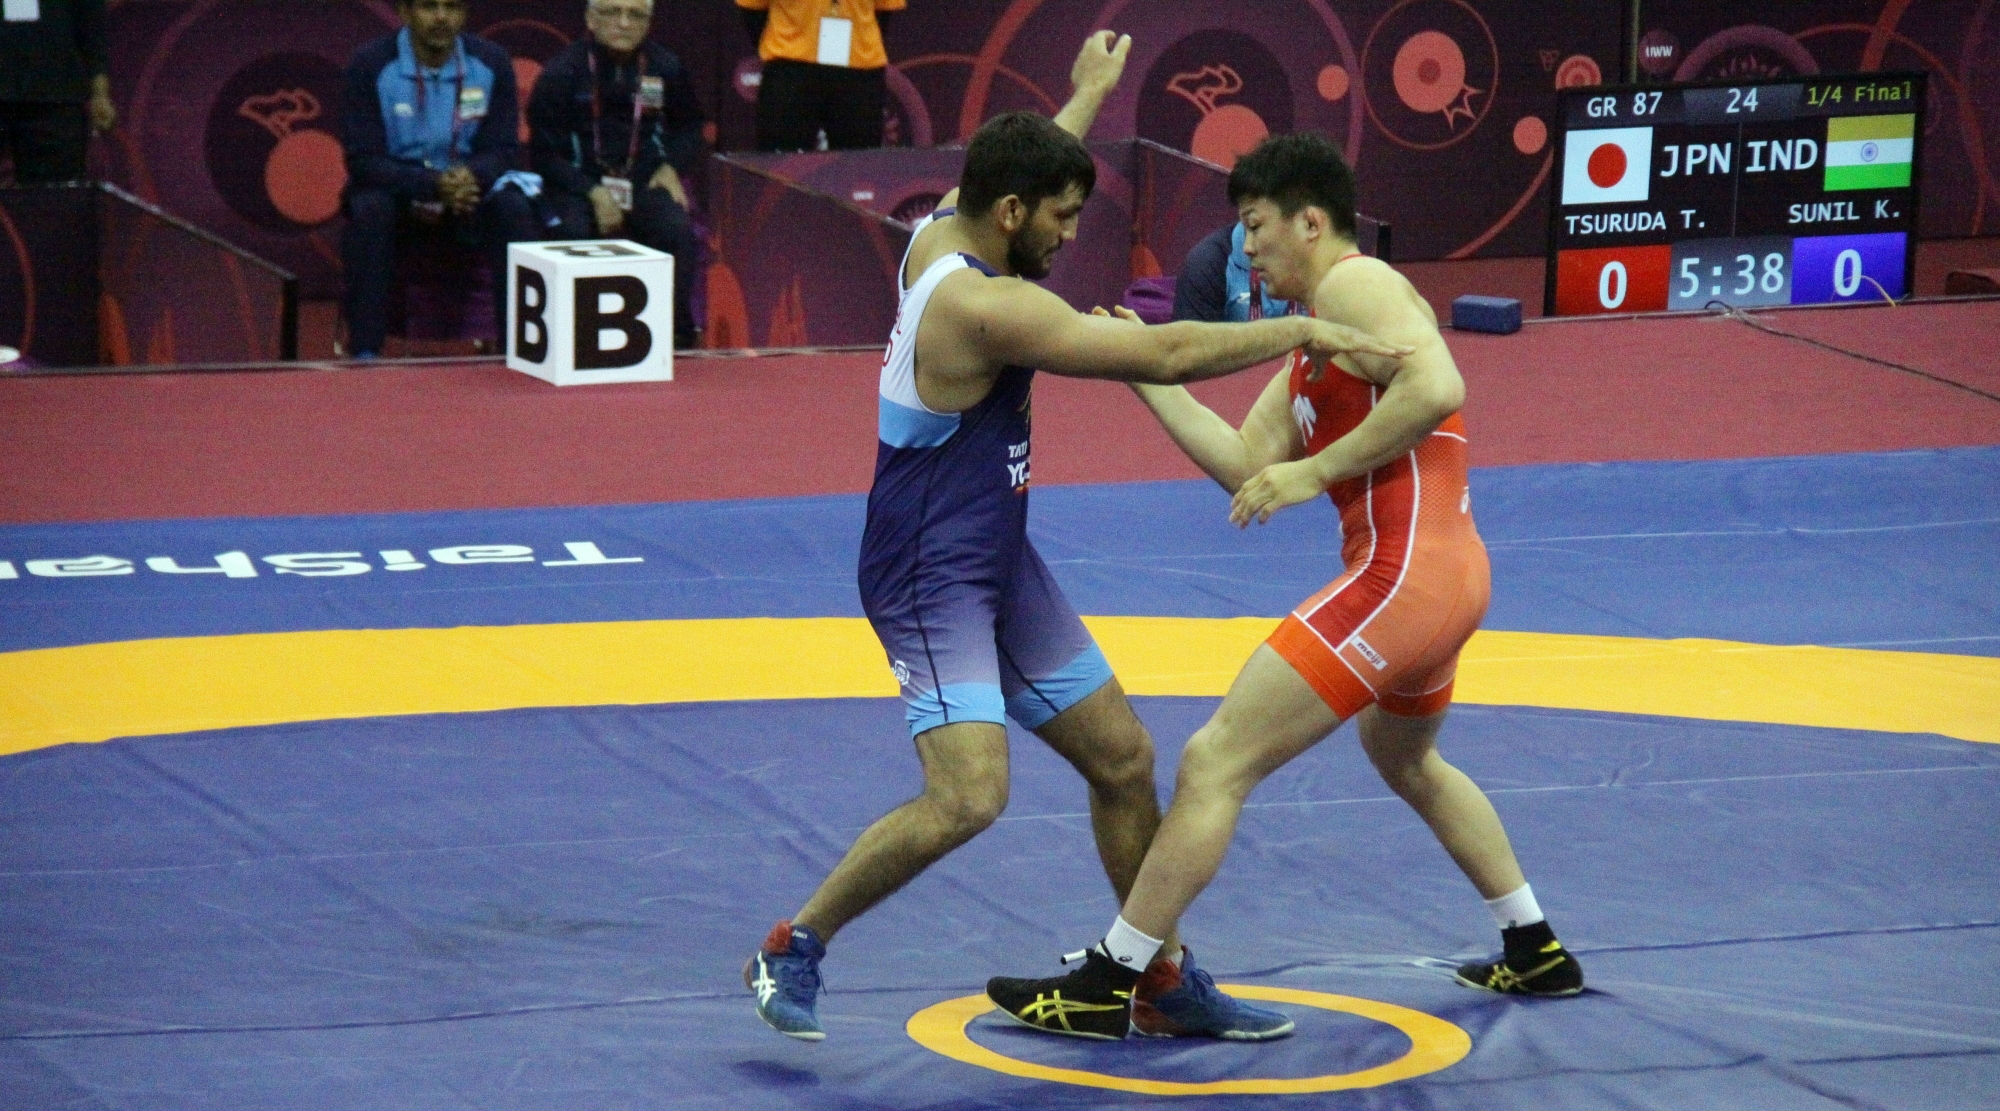 Asian Wrestling Championships 2020: Sunil Kumar Wins India's 1st Greco-Roman Gold in 27 Years